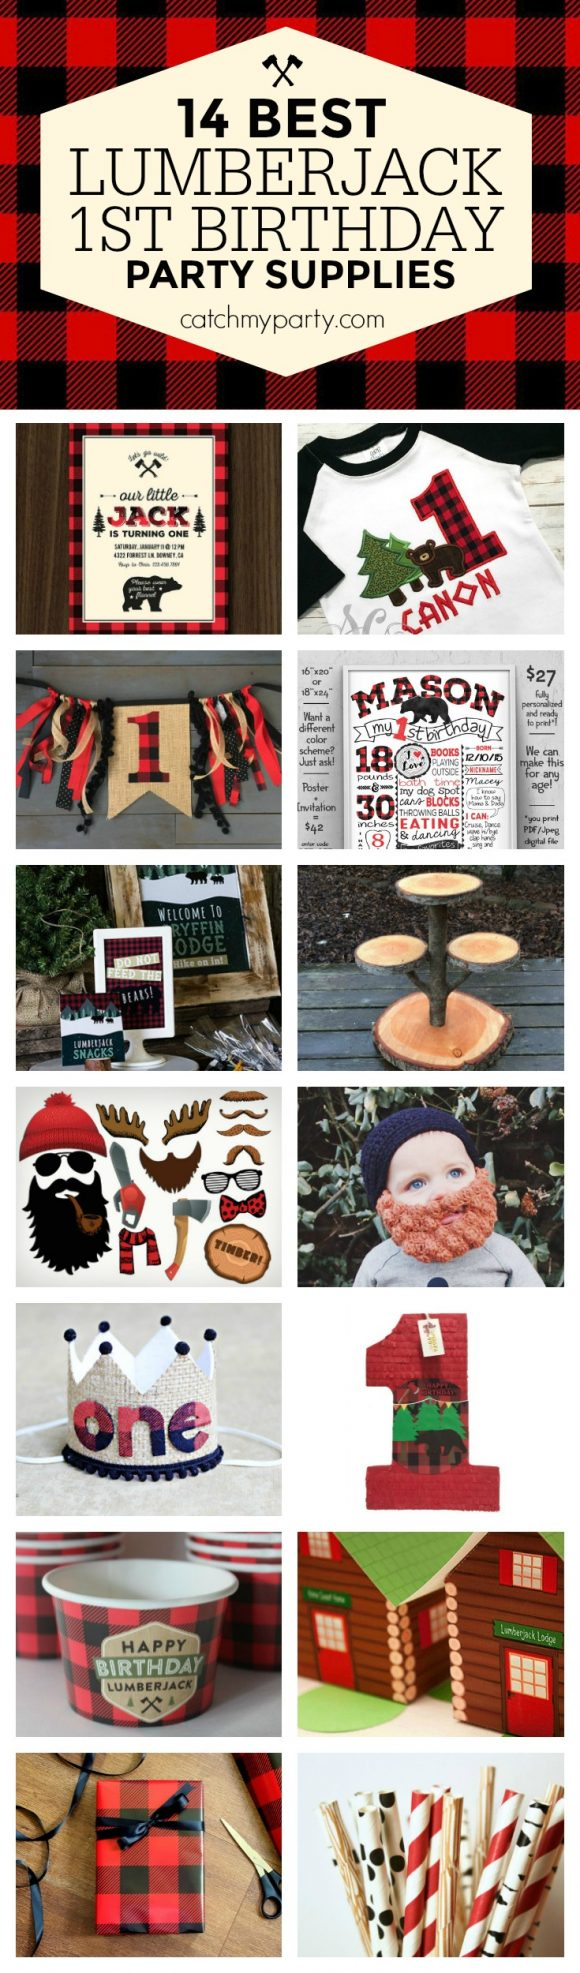 "We're super excited to be included in Catch My Party's ""14 Best Lumberjack 1st Birthday Party Supplies"" roundup. Check it out here."